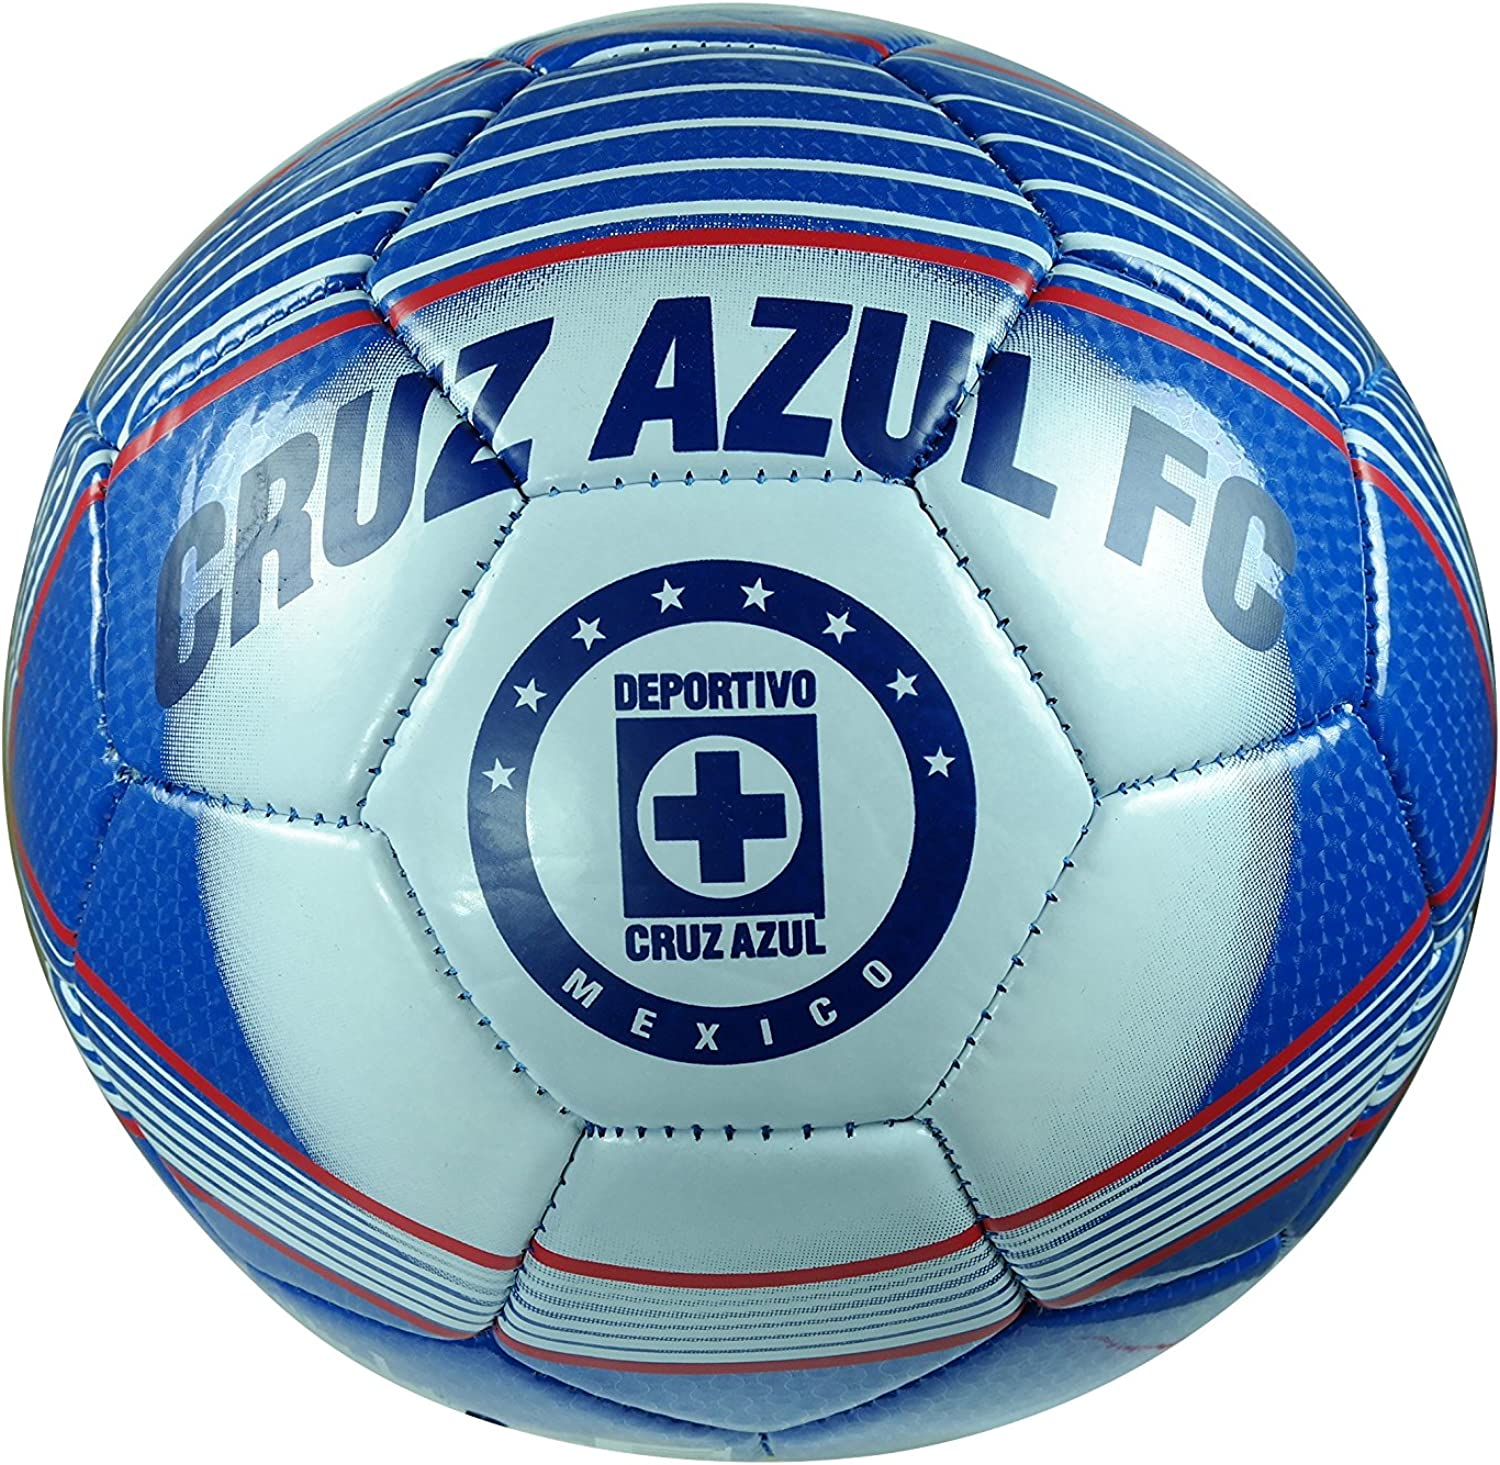 Cruz bluee Authentic Official Licensed Soccer Ball Size 4031